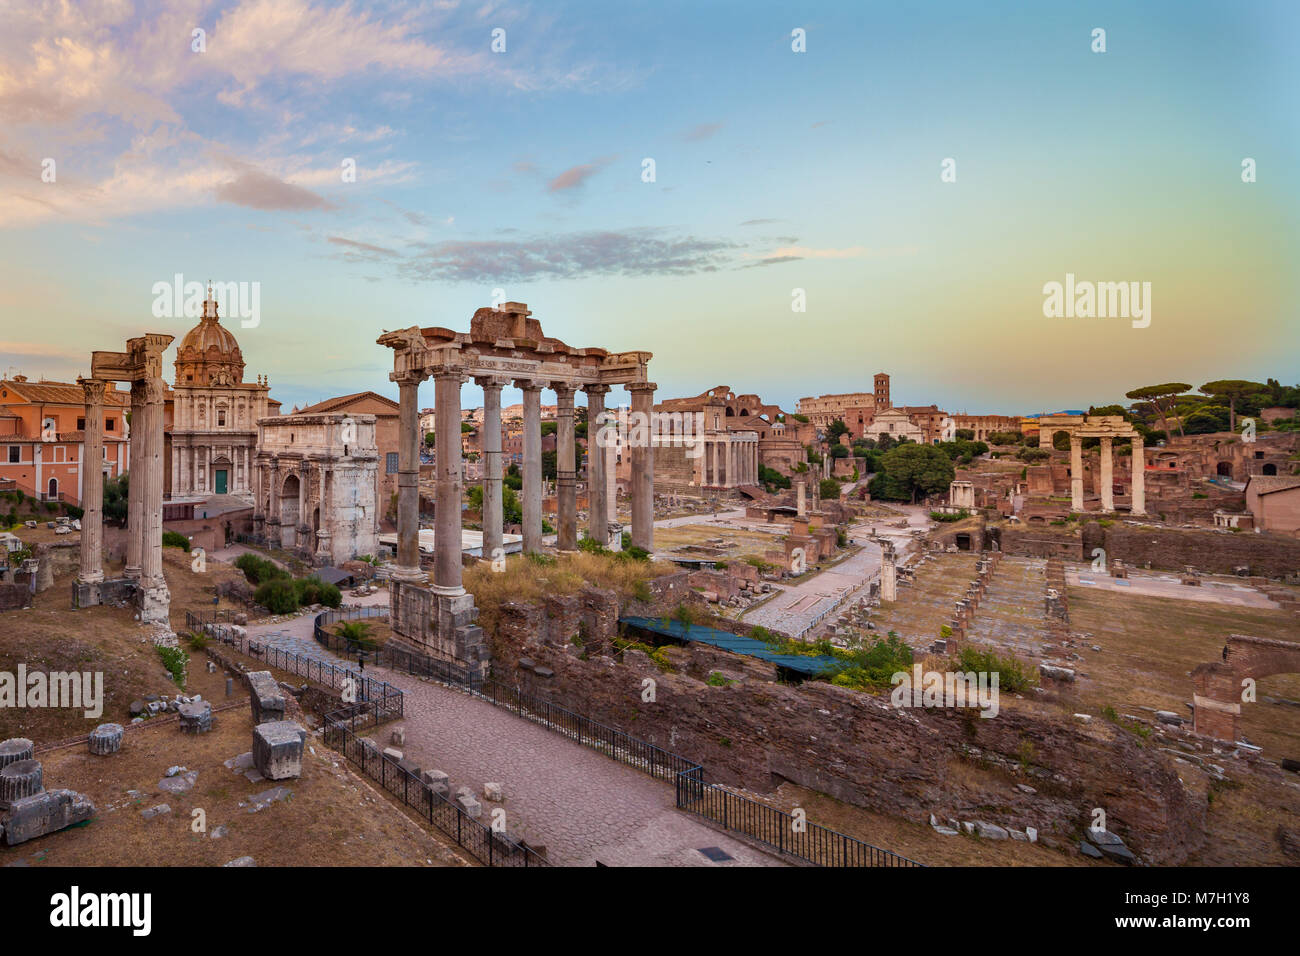 Dusk view of Roman Forum looking East, Rome, Italy Stock Photo